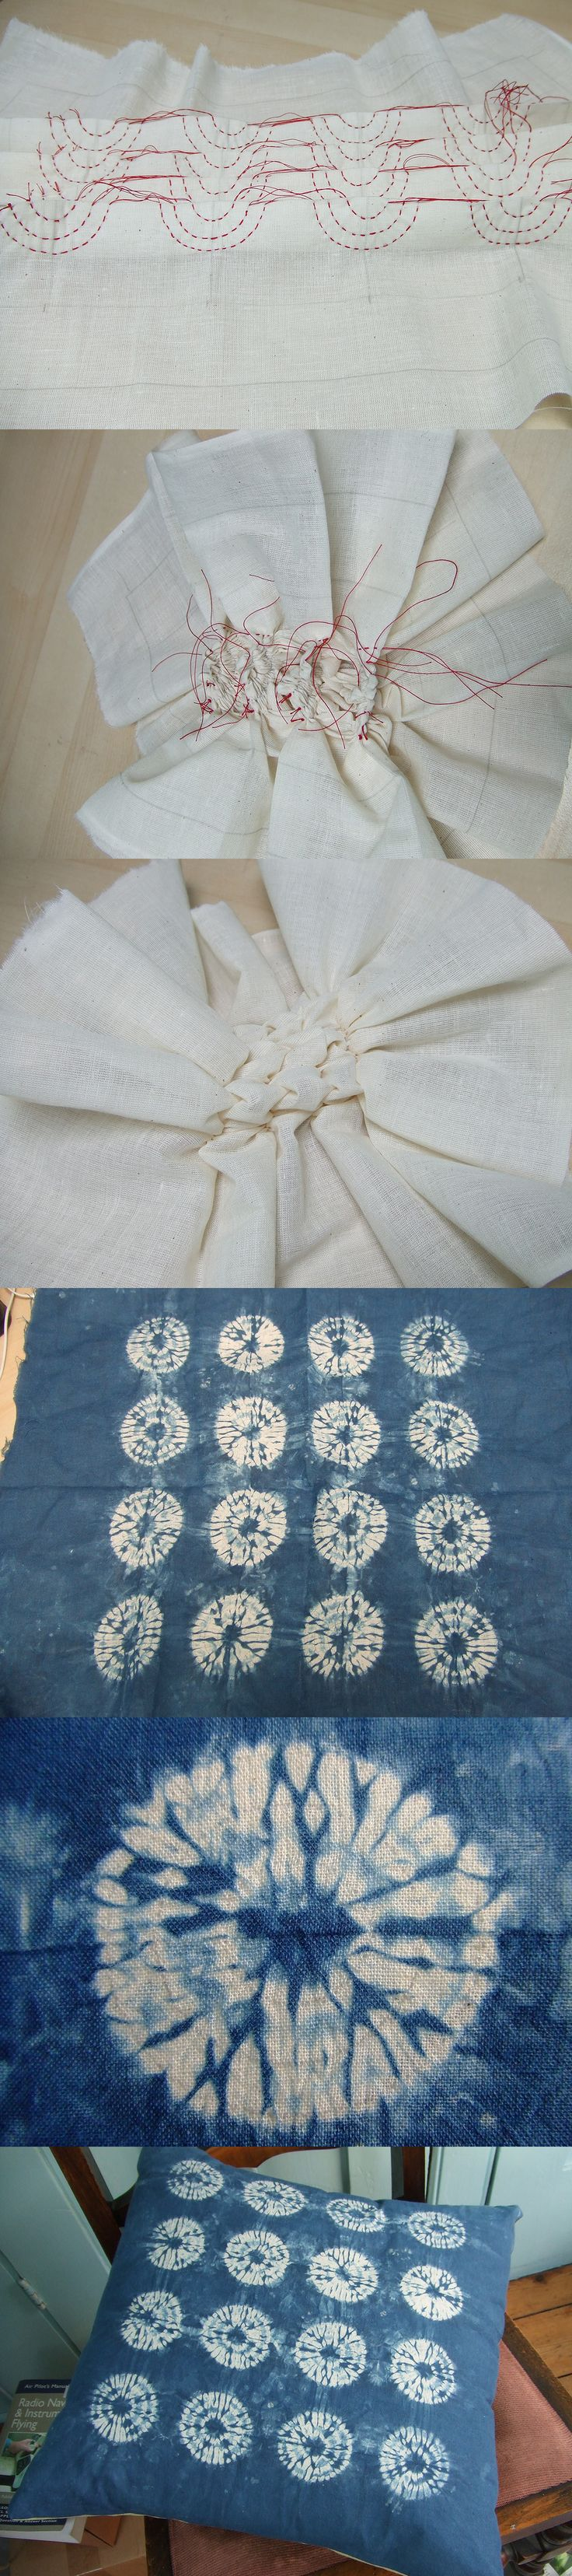 """1. Stitched semicircles on folded calico 2. Calico after pulling all the threads tight and securing 3. Other side of the calico after pulling the threads tight 4. After dyeing with indigo and unpicking the stitches 5. Close-up detail of shibori circle 6. The finished cushion! Taken from the blog, """"Flextiles,"""" original link is http://flextiles.wordpress.com/2011/07/15/shibori-cushion/"""